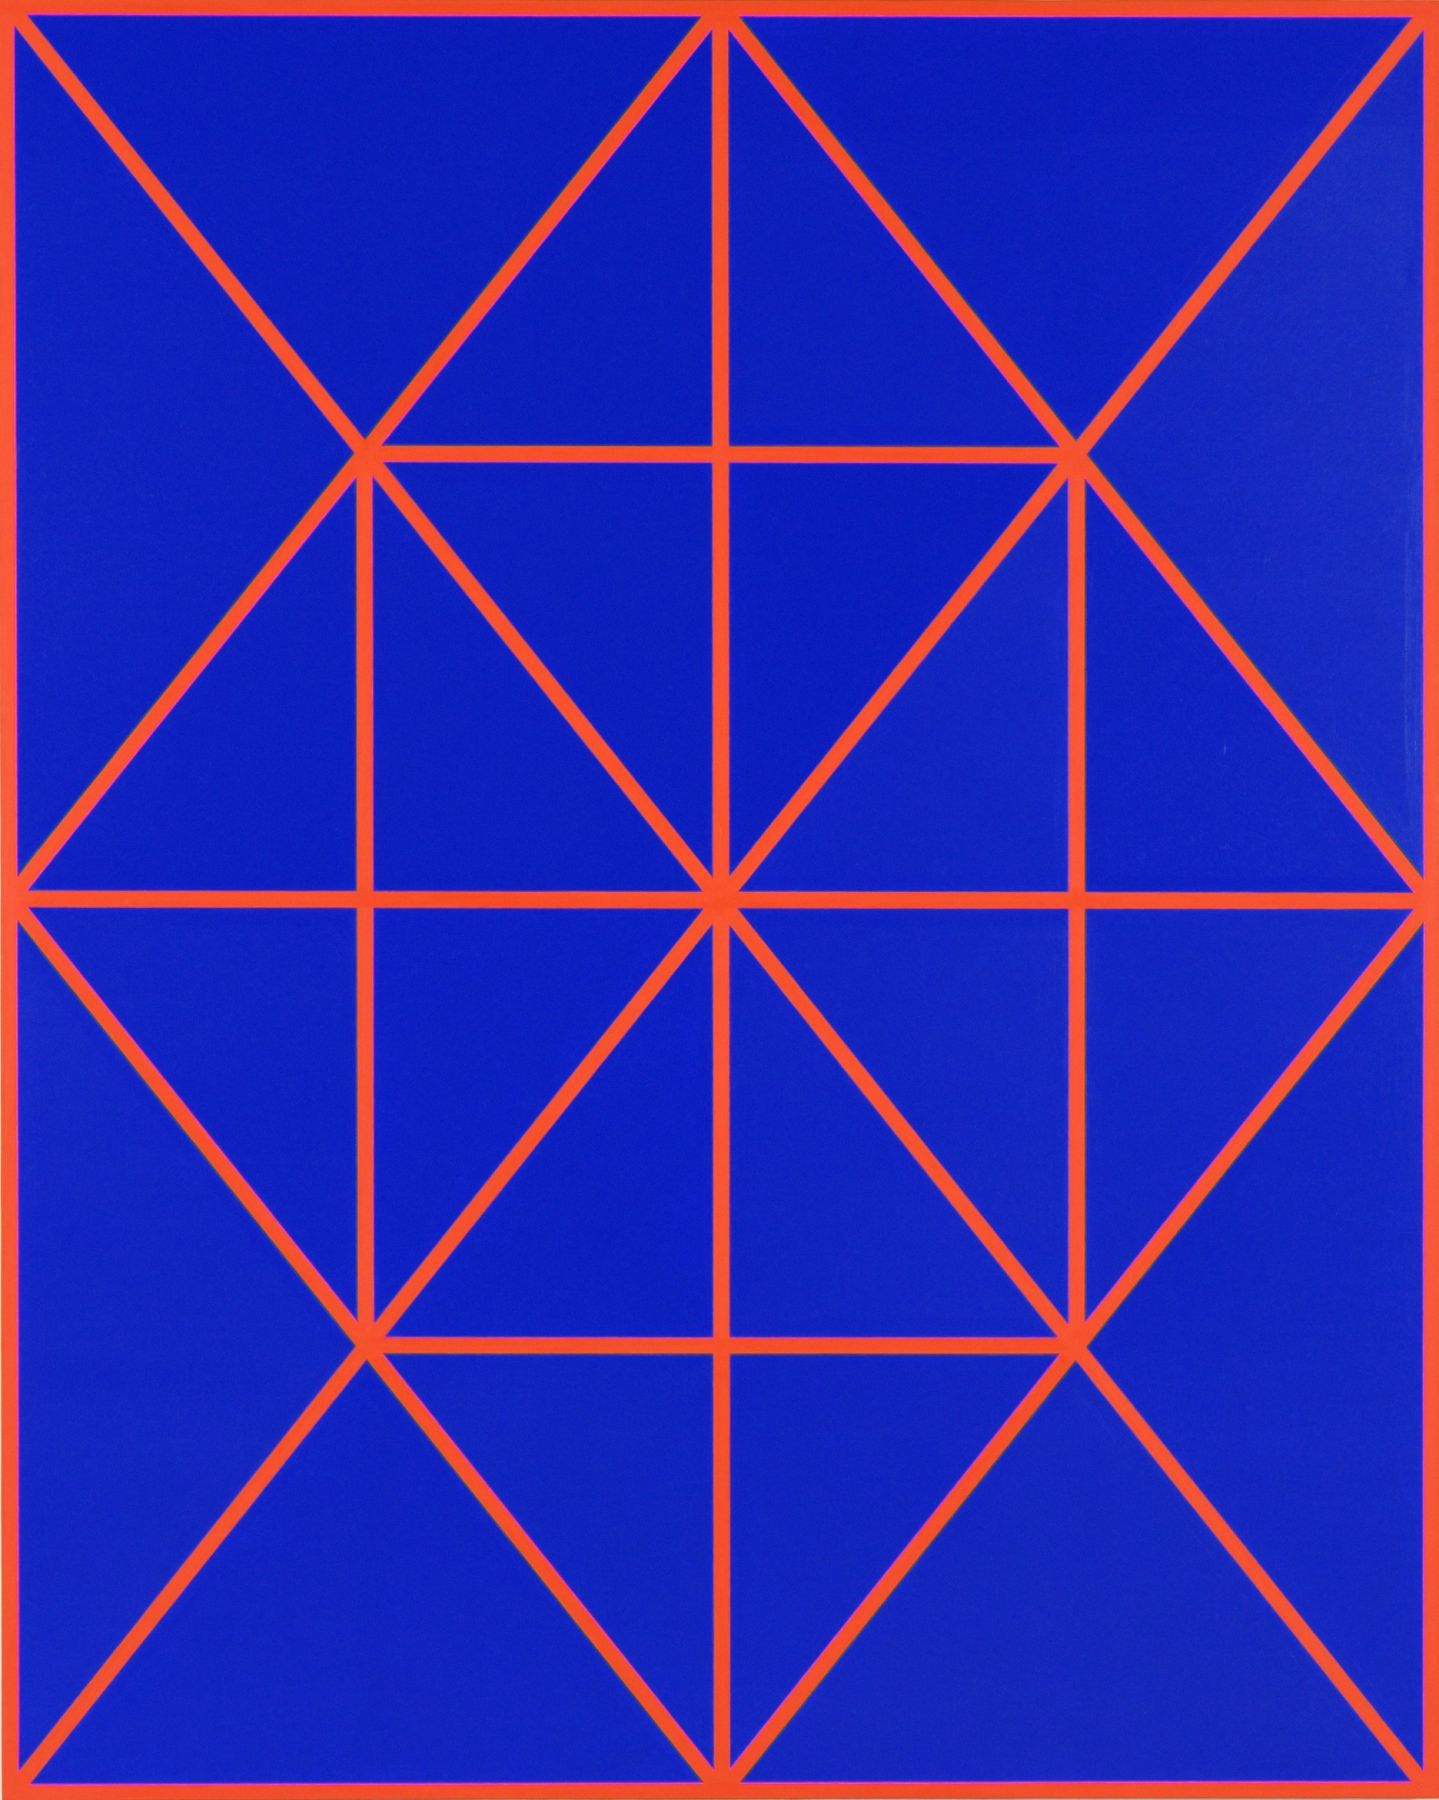 Cary Smith Complex Diagonals #8 (blue-red), 2017